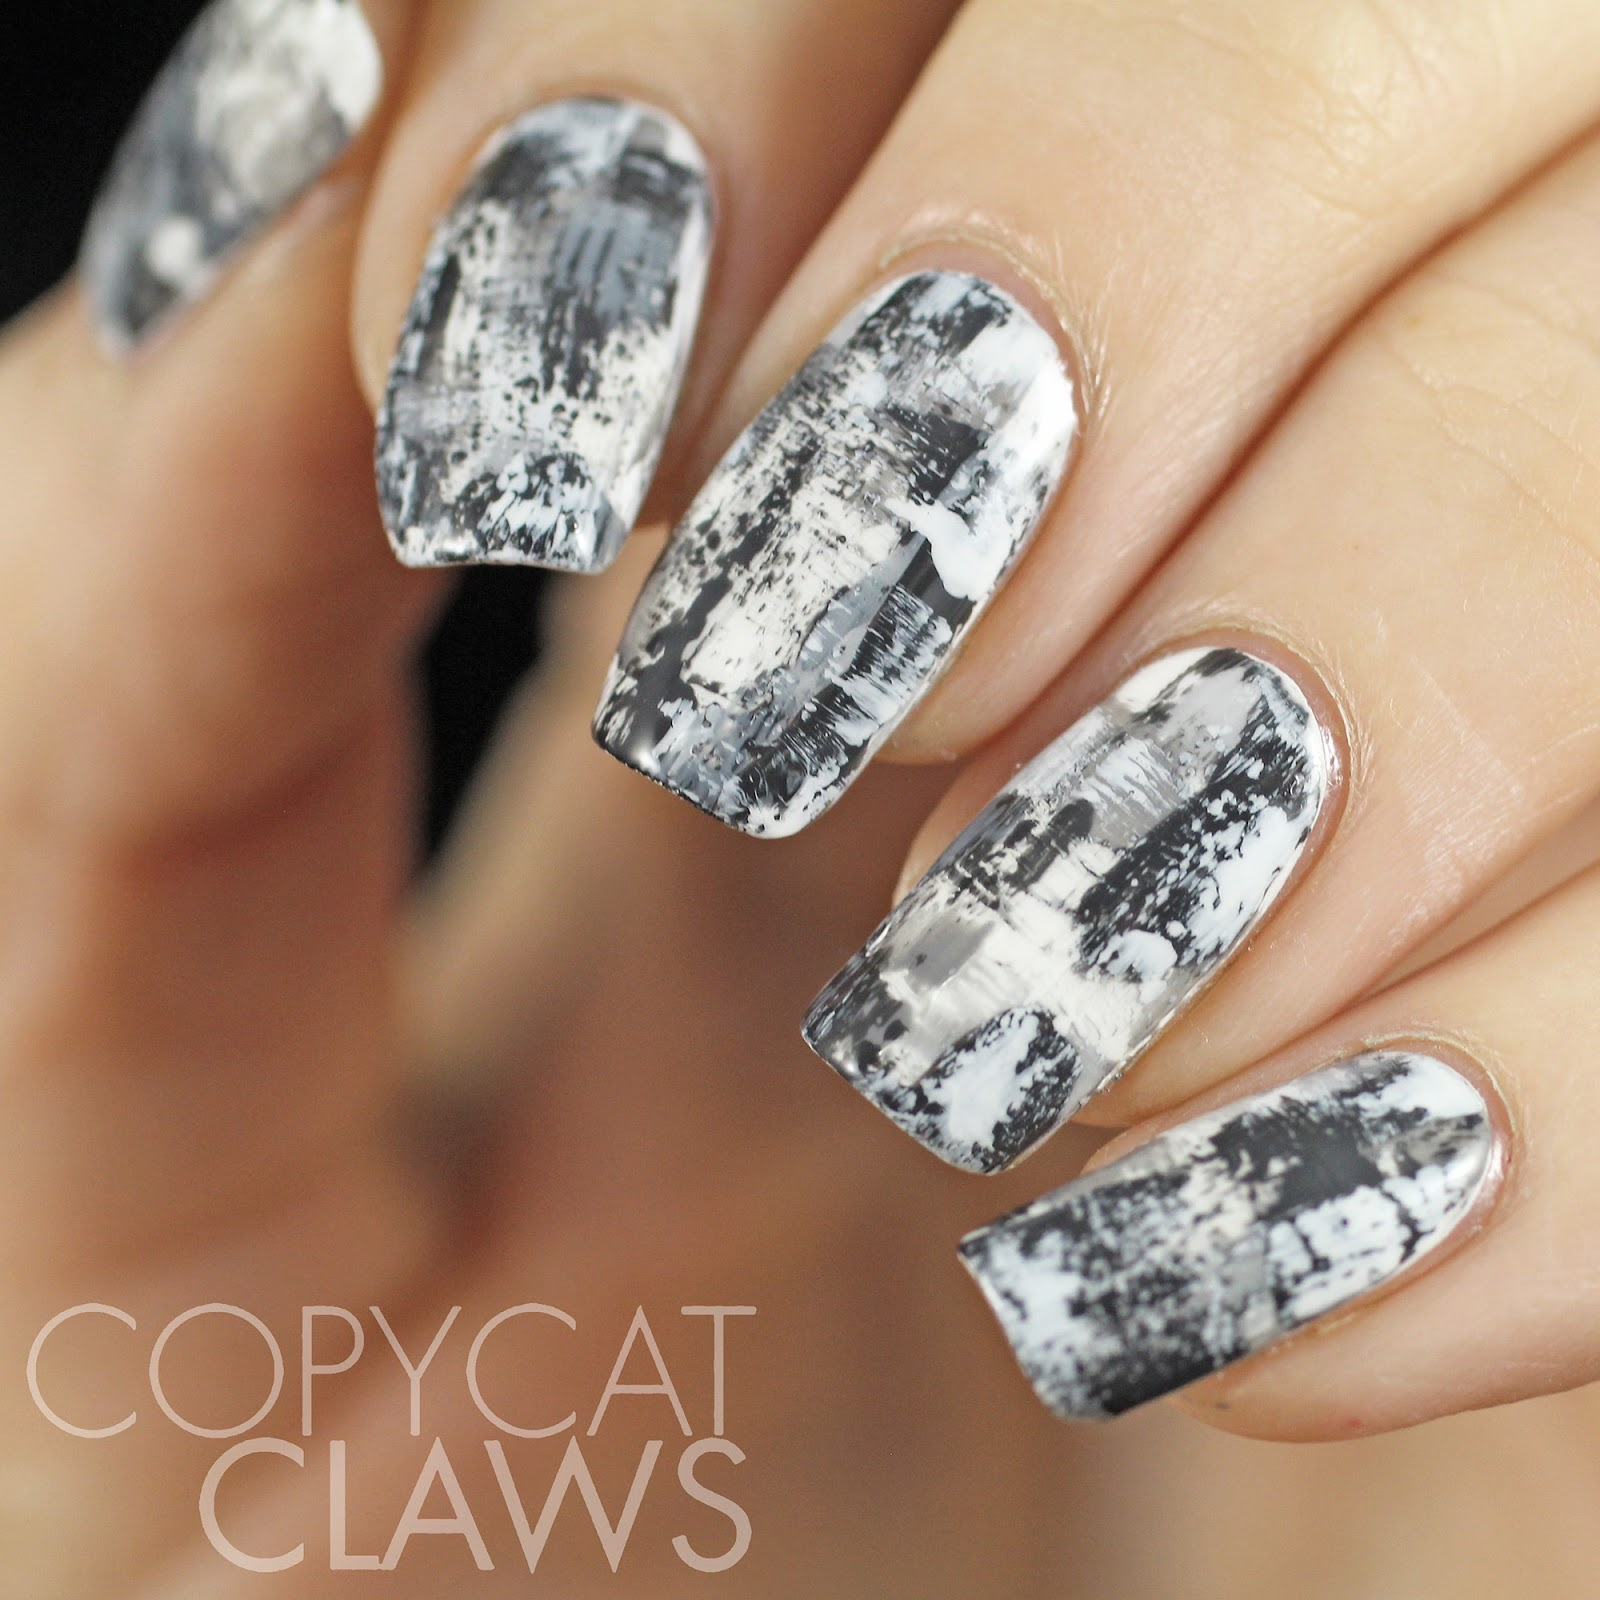 Copycat Claws: Monochrome Distressed Nail Art